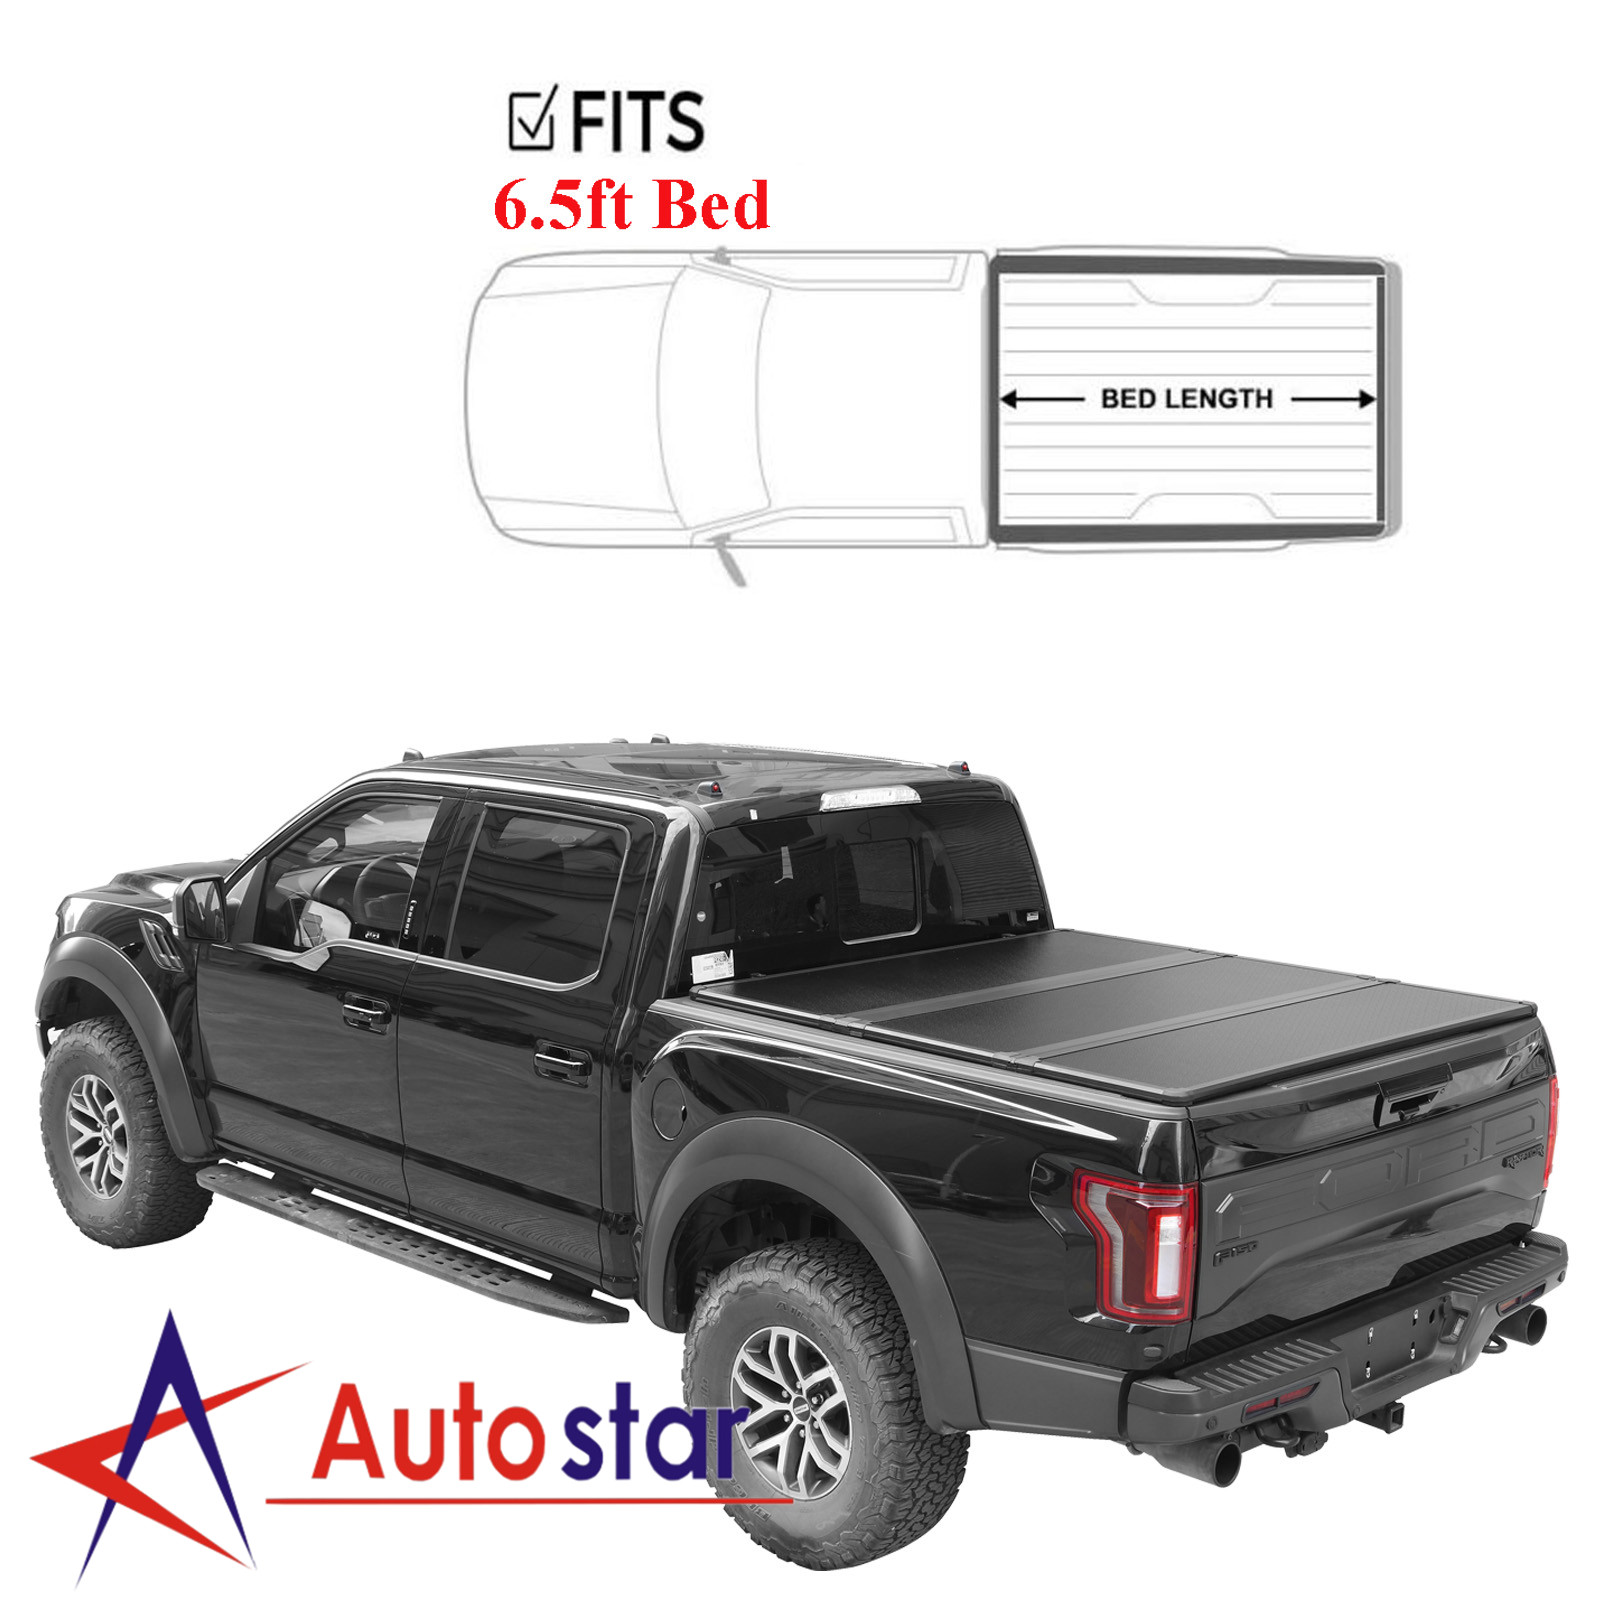 F250 Super Cab >> Details About Hard Solid Tri Fold Tonneau Cover For 1999 2018 Ford F250 Super Duty 6 5ft Bed